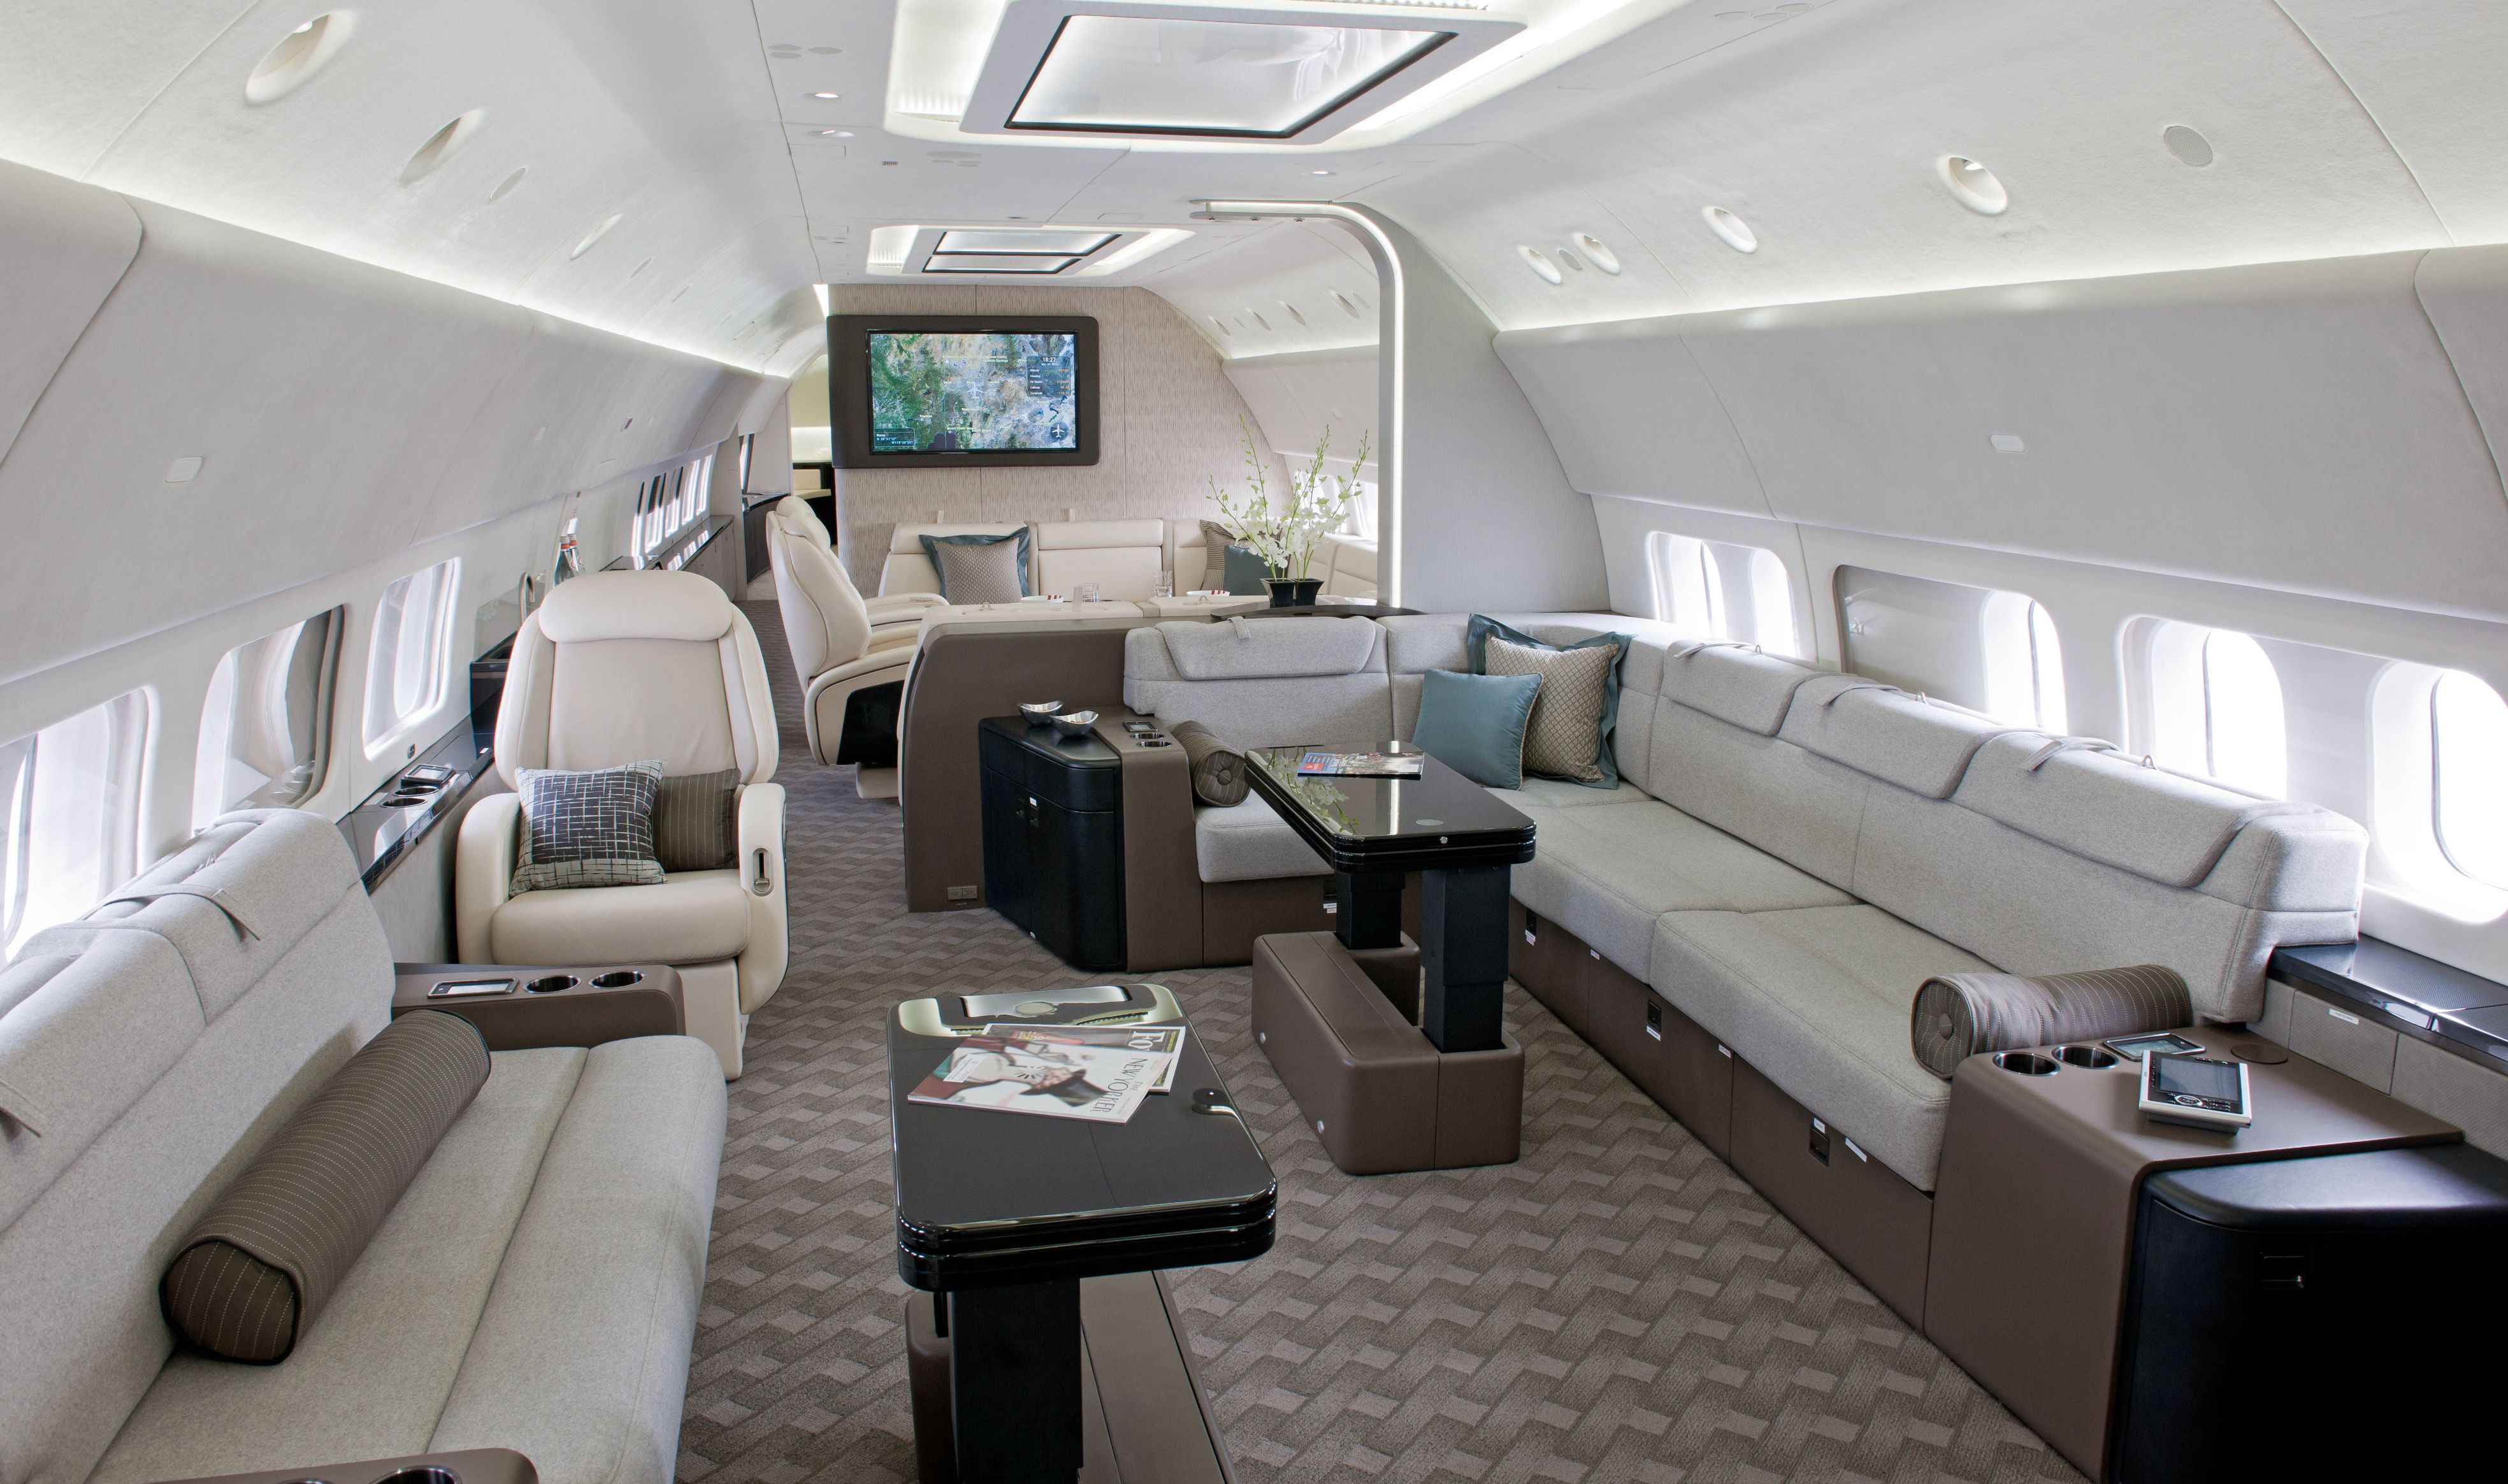 Worlds most expensive jet aircraft private jet interior